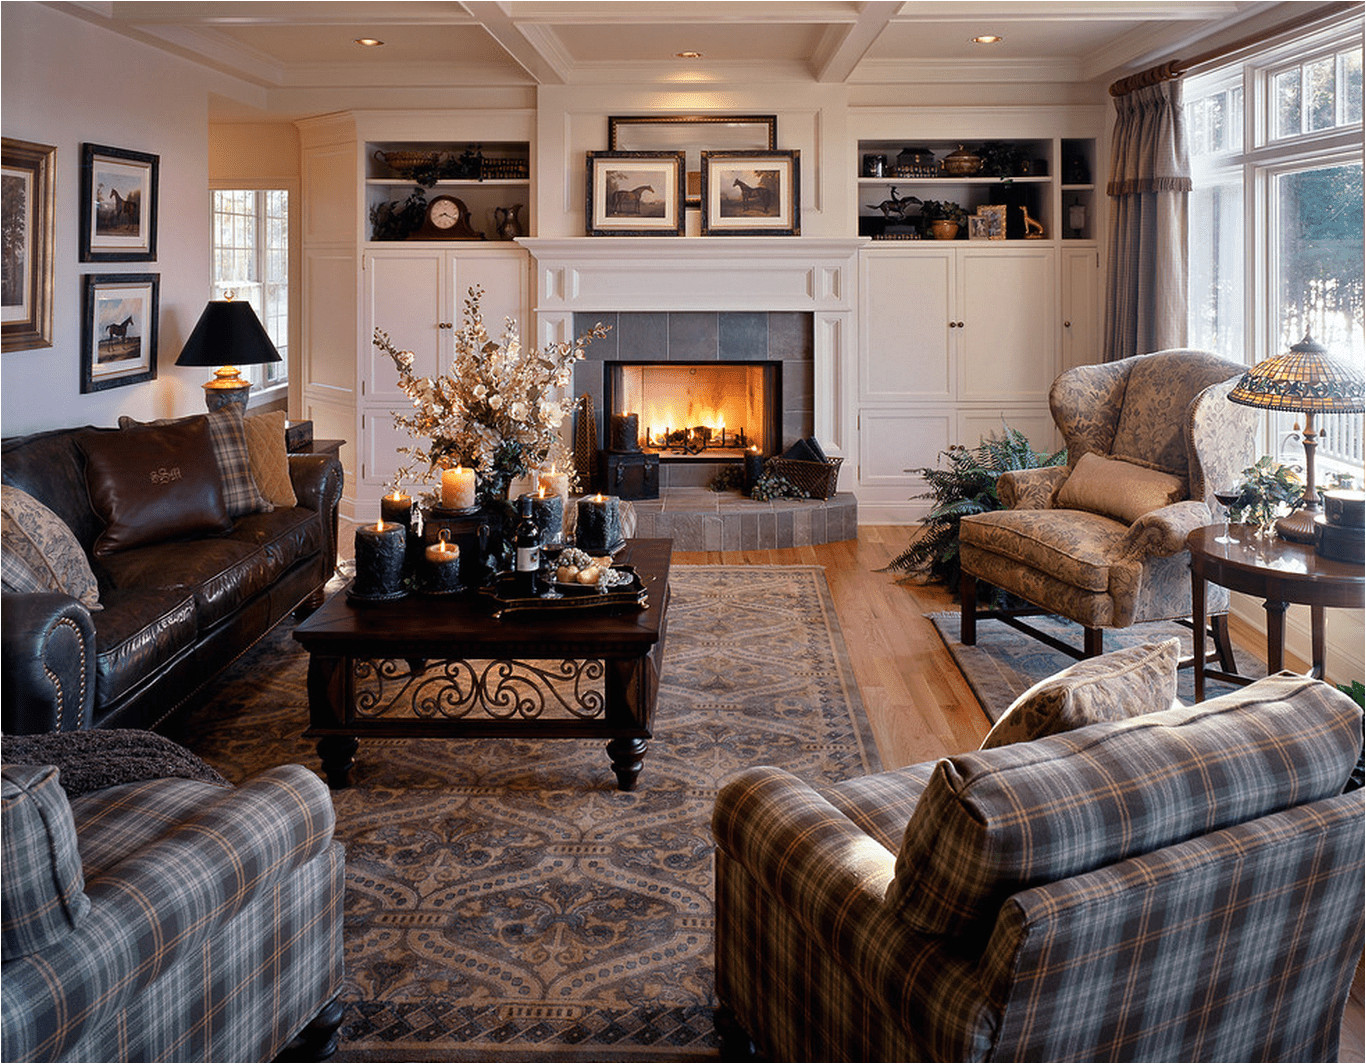 living room with plaid and leather furniture 589faf575f9b58819cb3fb05 png